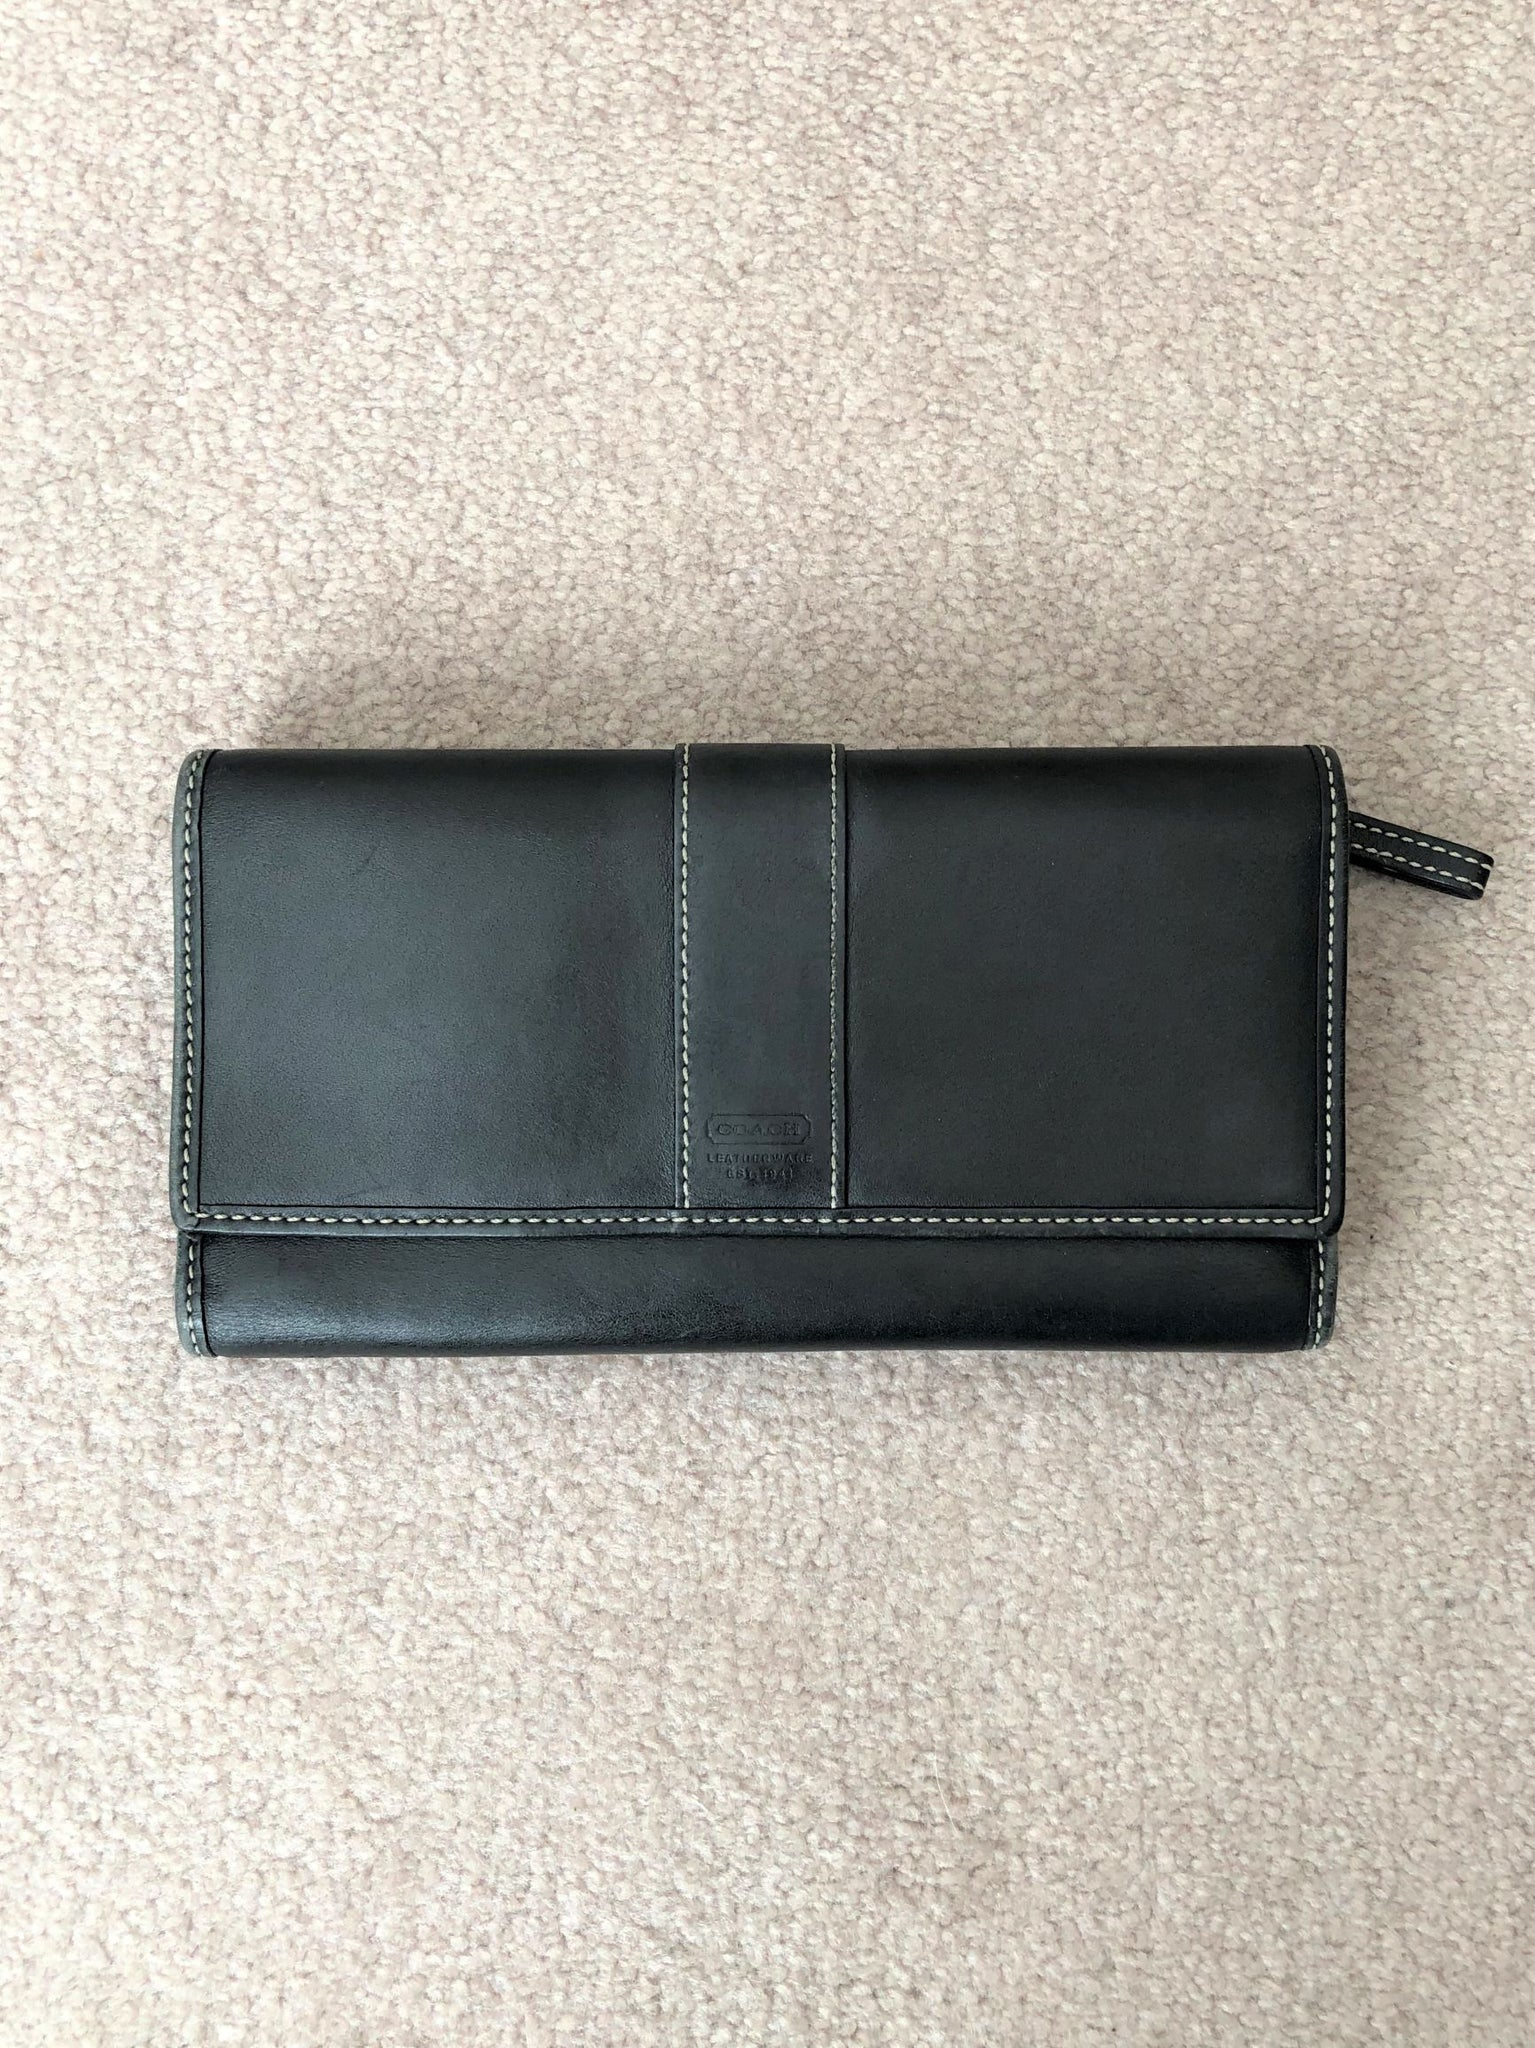 COACH Black Leather Wallet